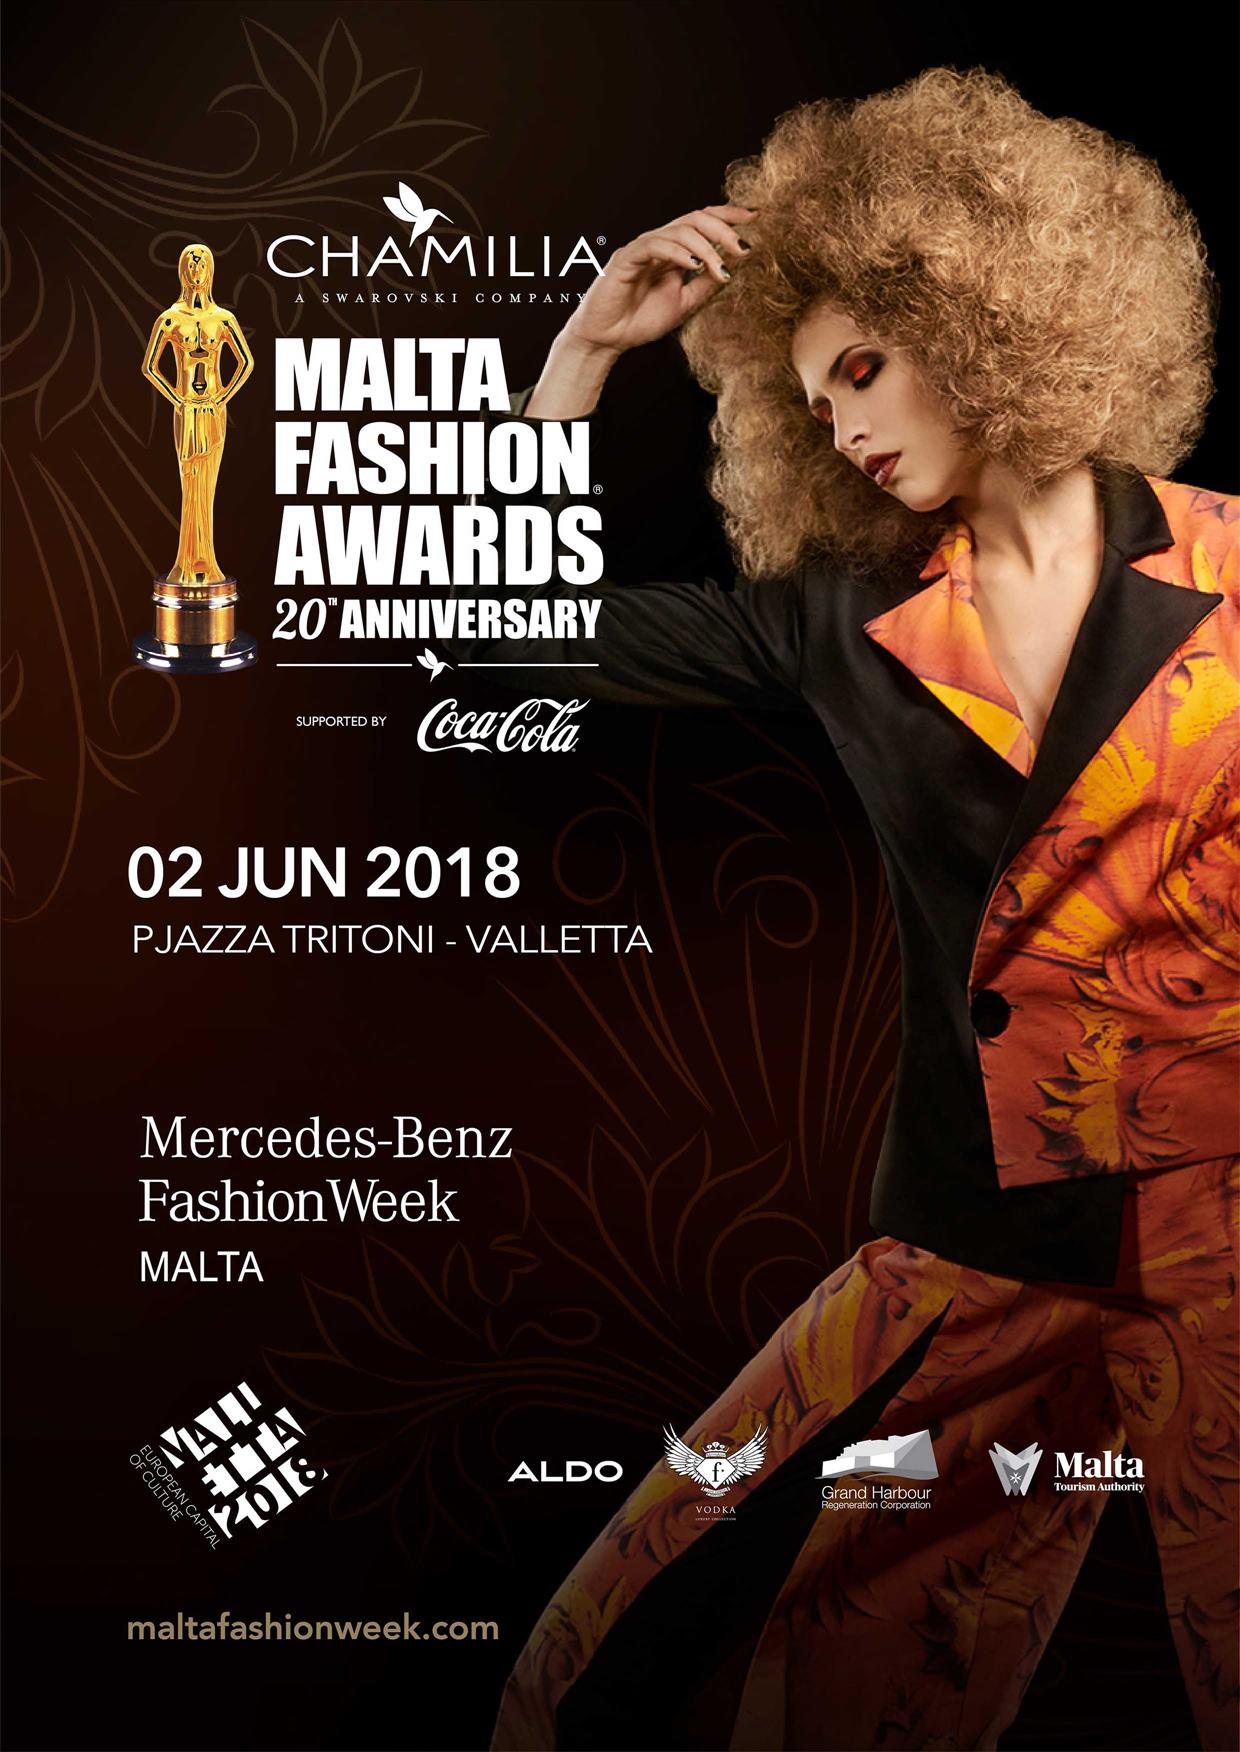 The Chamilia MALTA FASHION AWARDS flyer